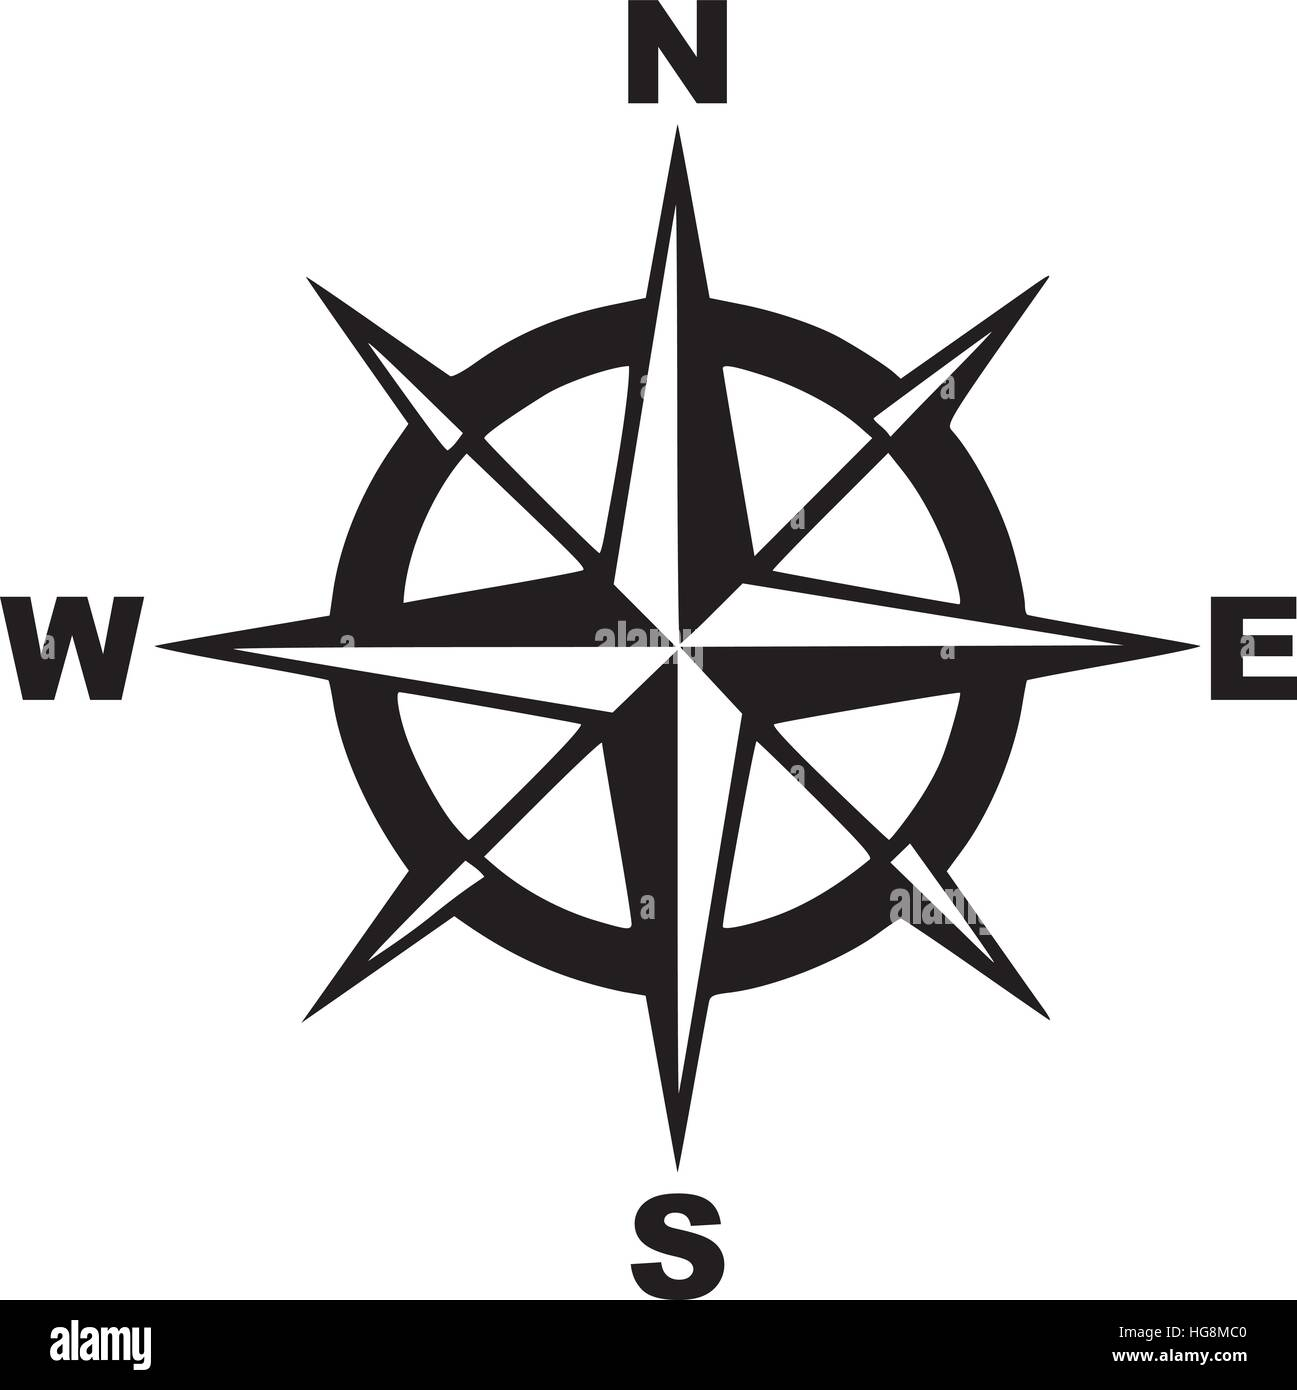 Compass with north south east west stock vector art illustration compass with north south east west biocorpaavc Image collections